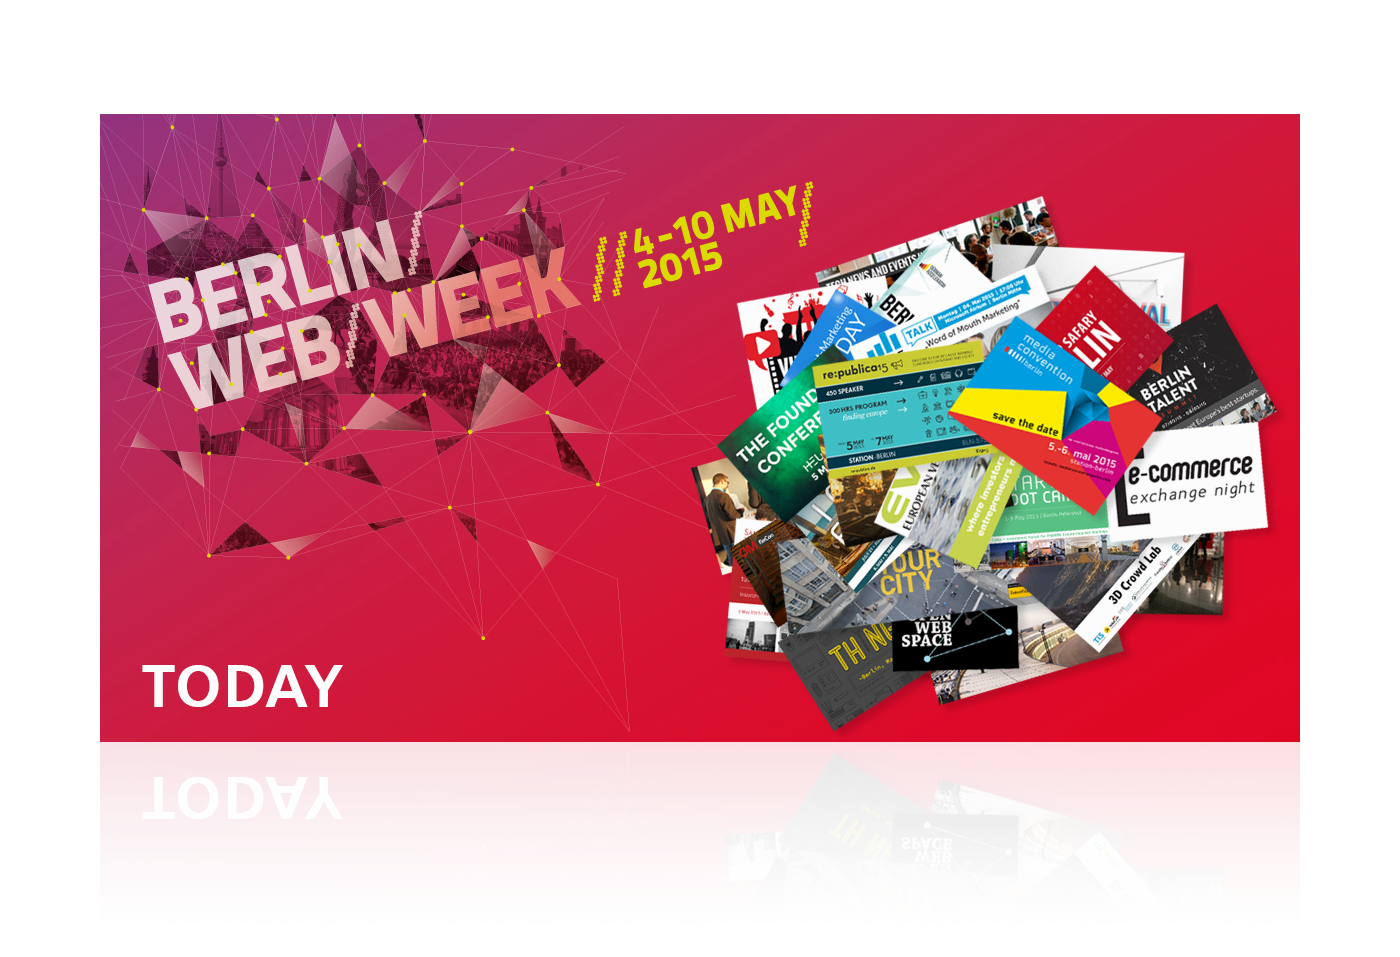 Navarts Grafikdesign - Berlin Webweek Facebook Ads